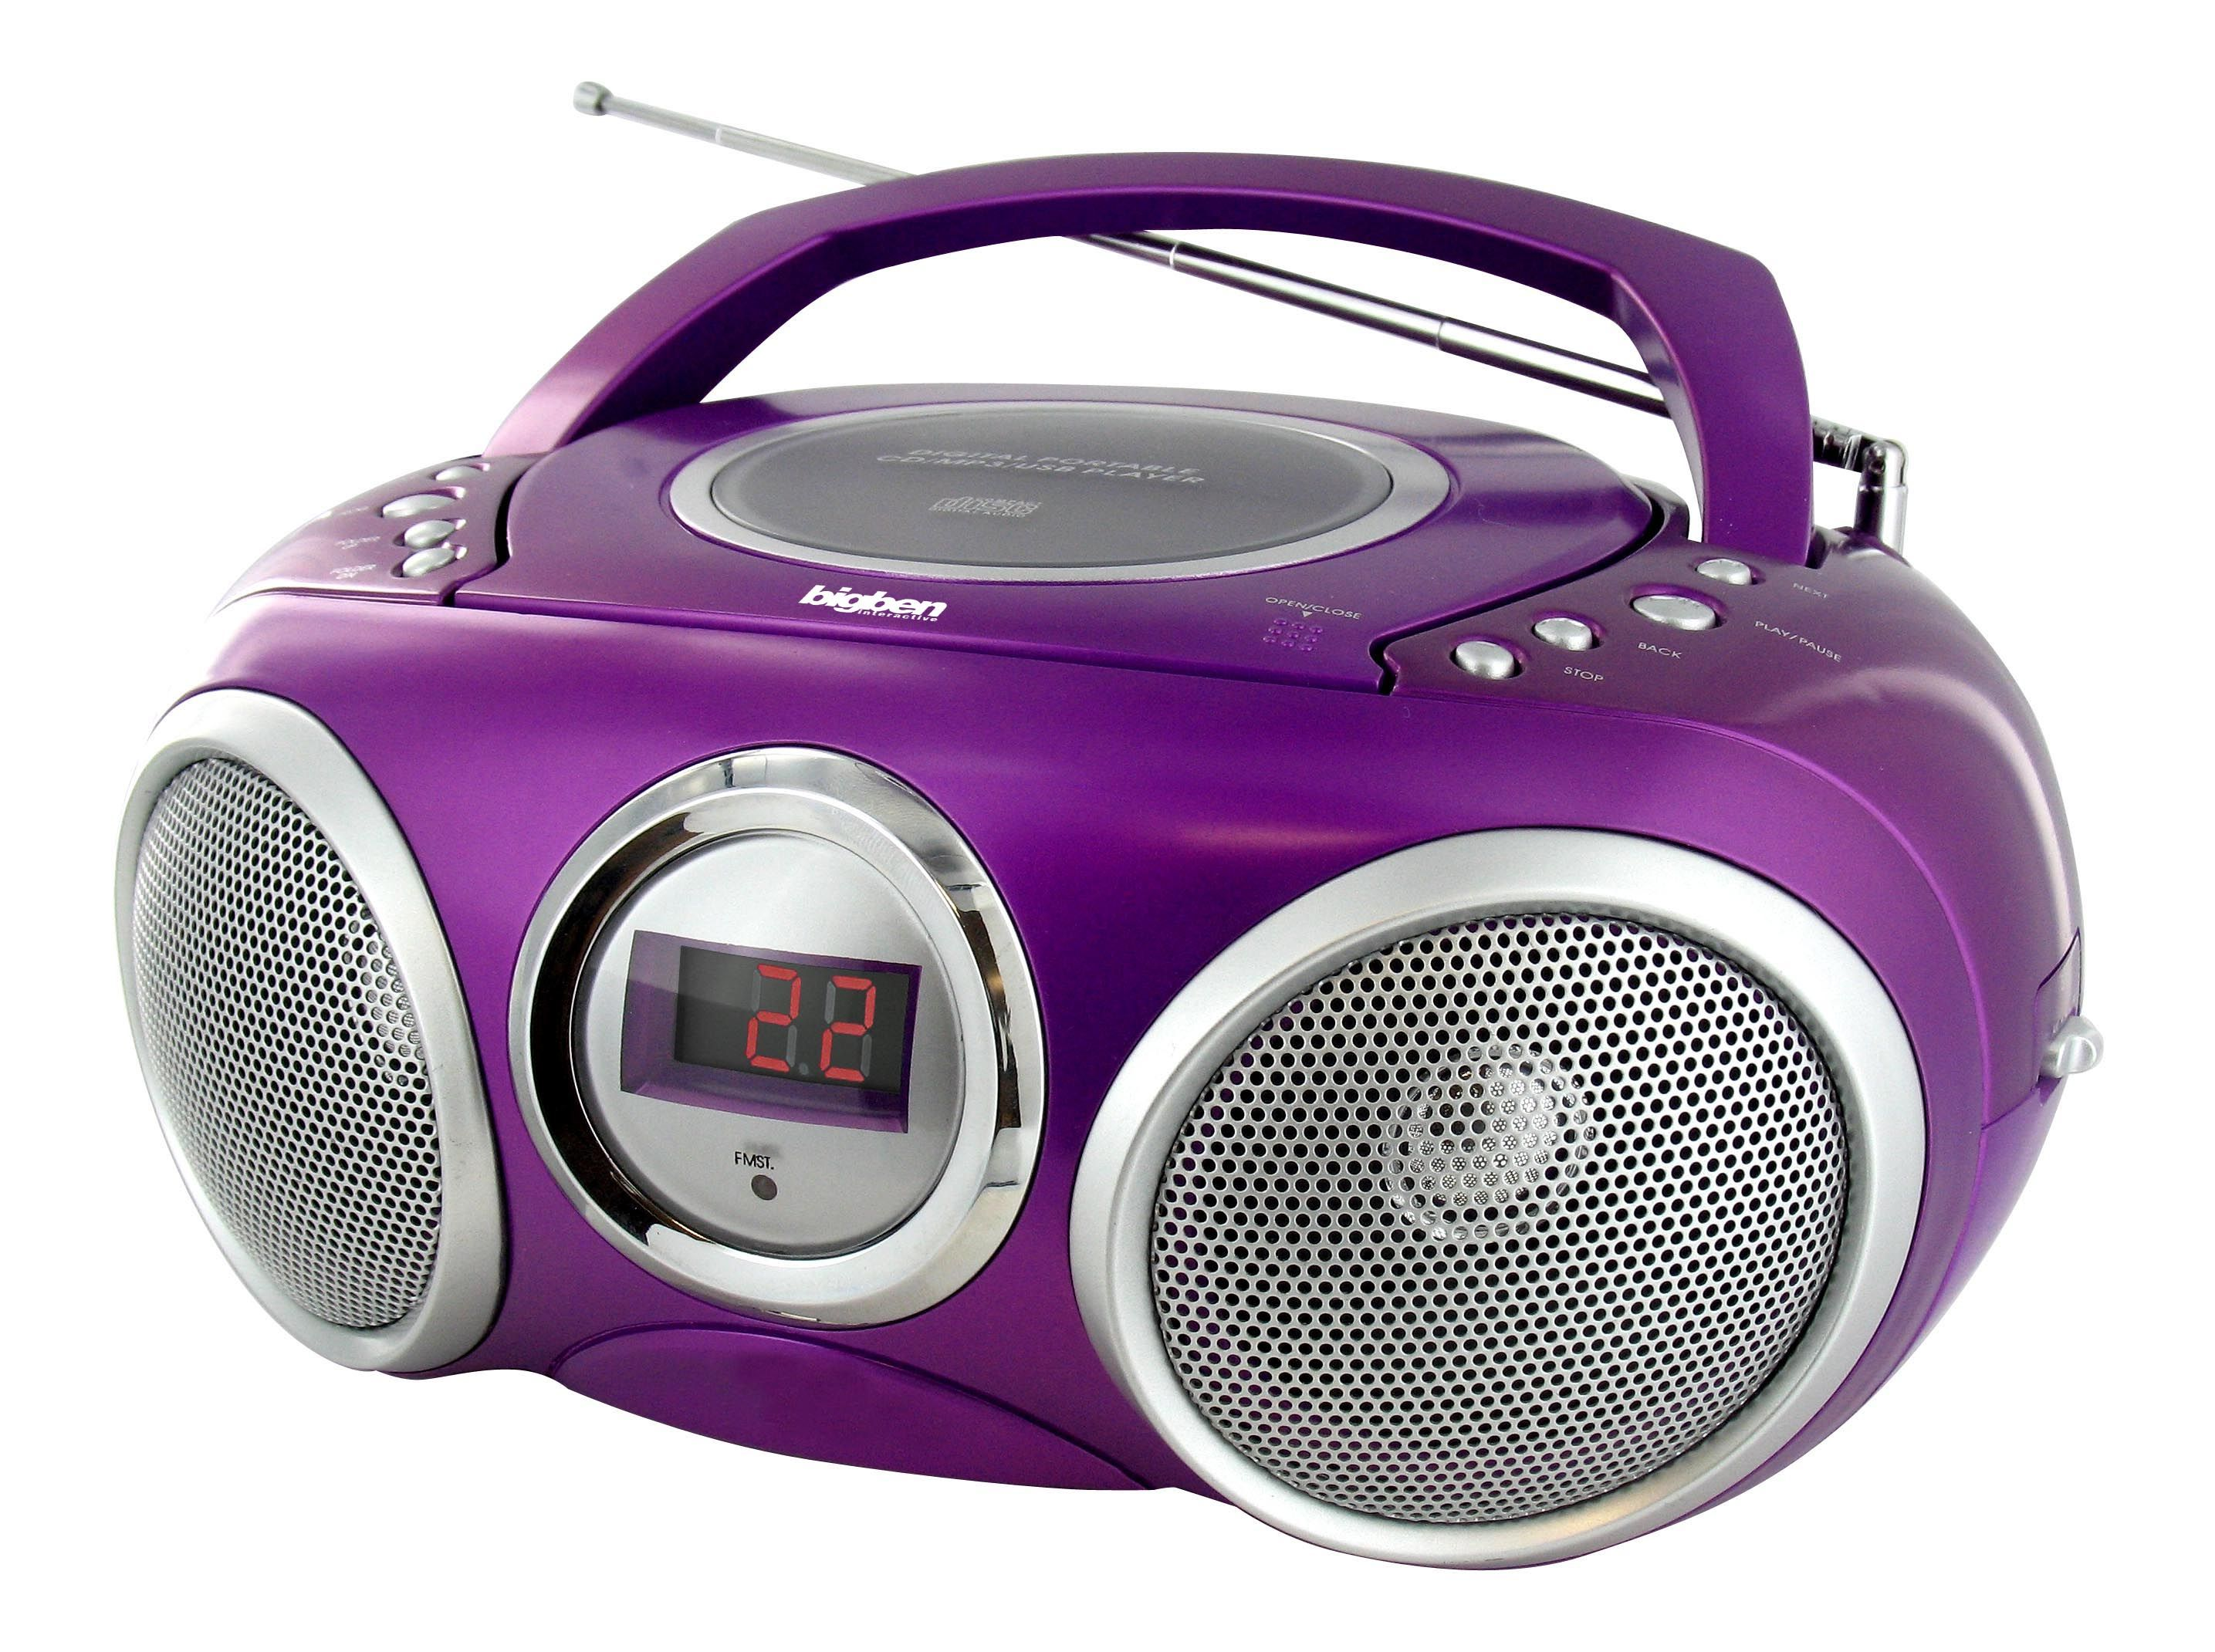 Purple Boombox Cd32 Carry Your Music And Play It On